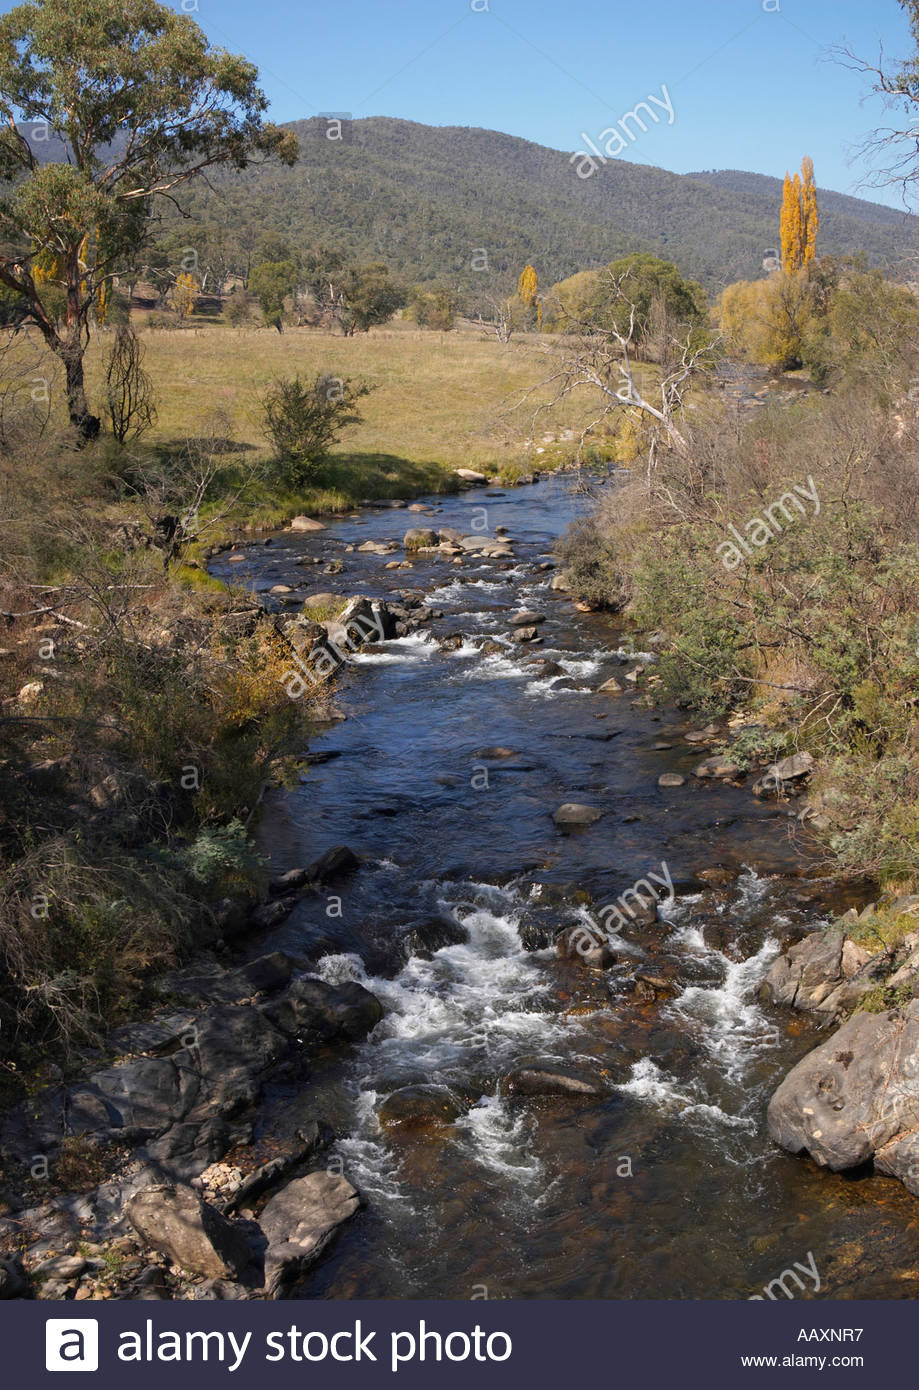 The Goodradigbee River near Brindabella Station in the High Country of New South Wales Australia - Stock Image